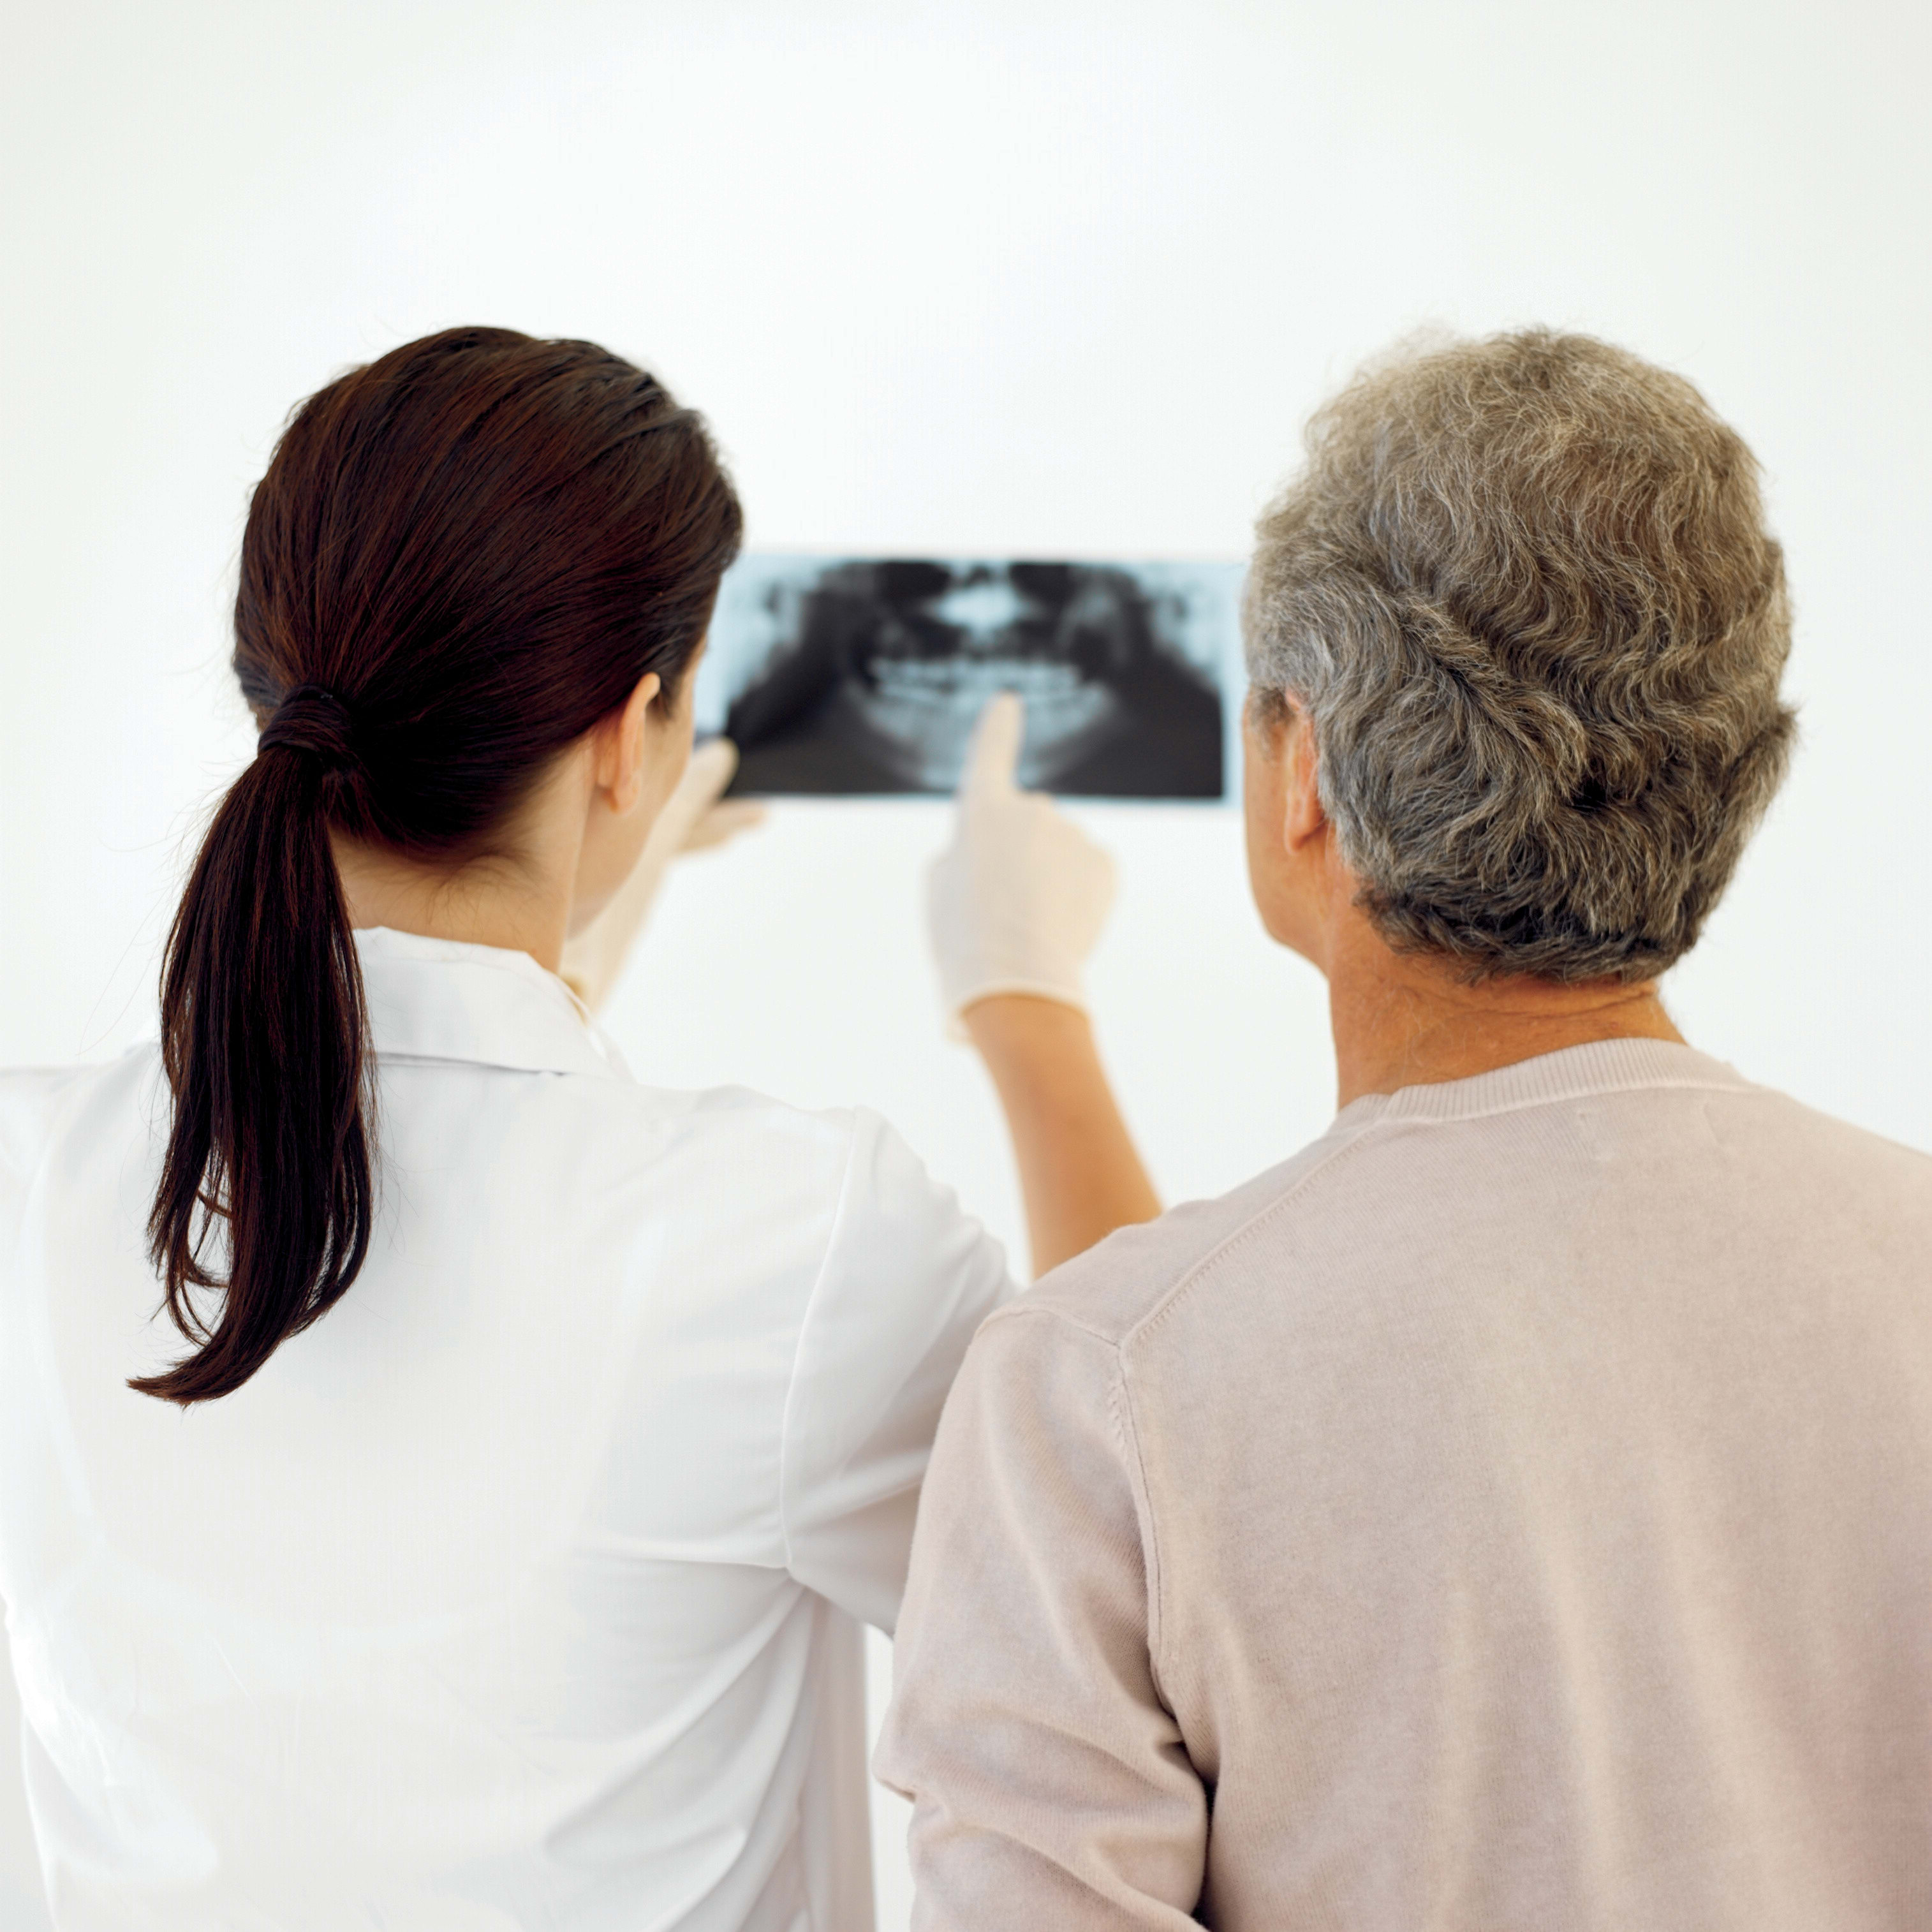 Dentist and patient reviewing a panoramic radiograph